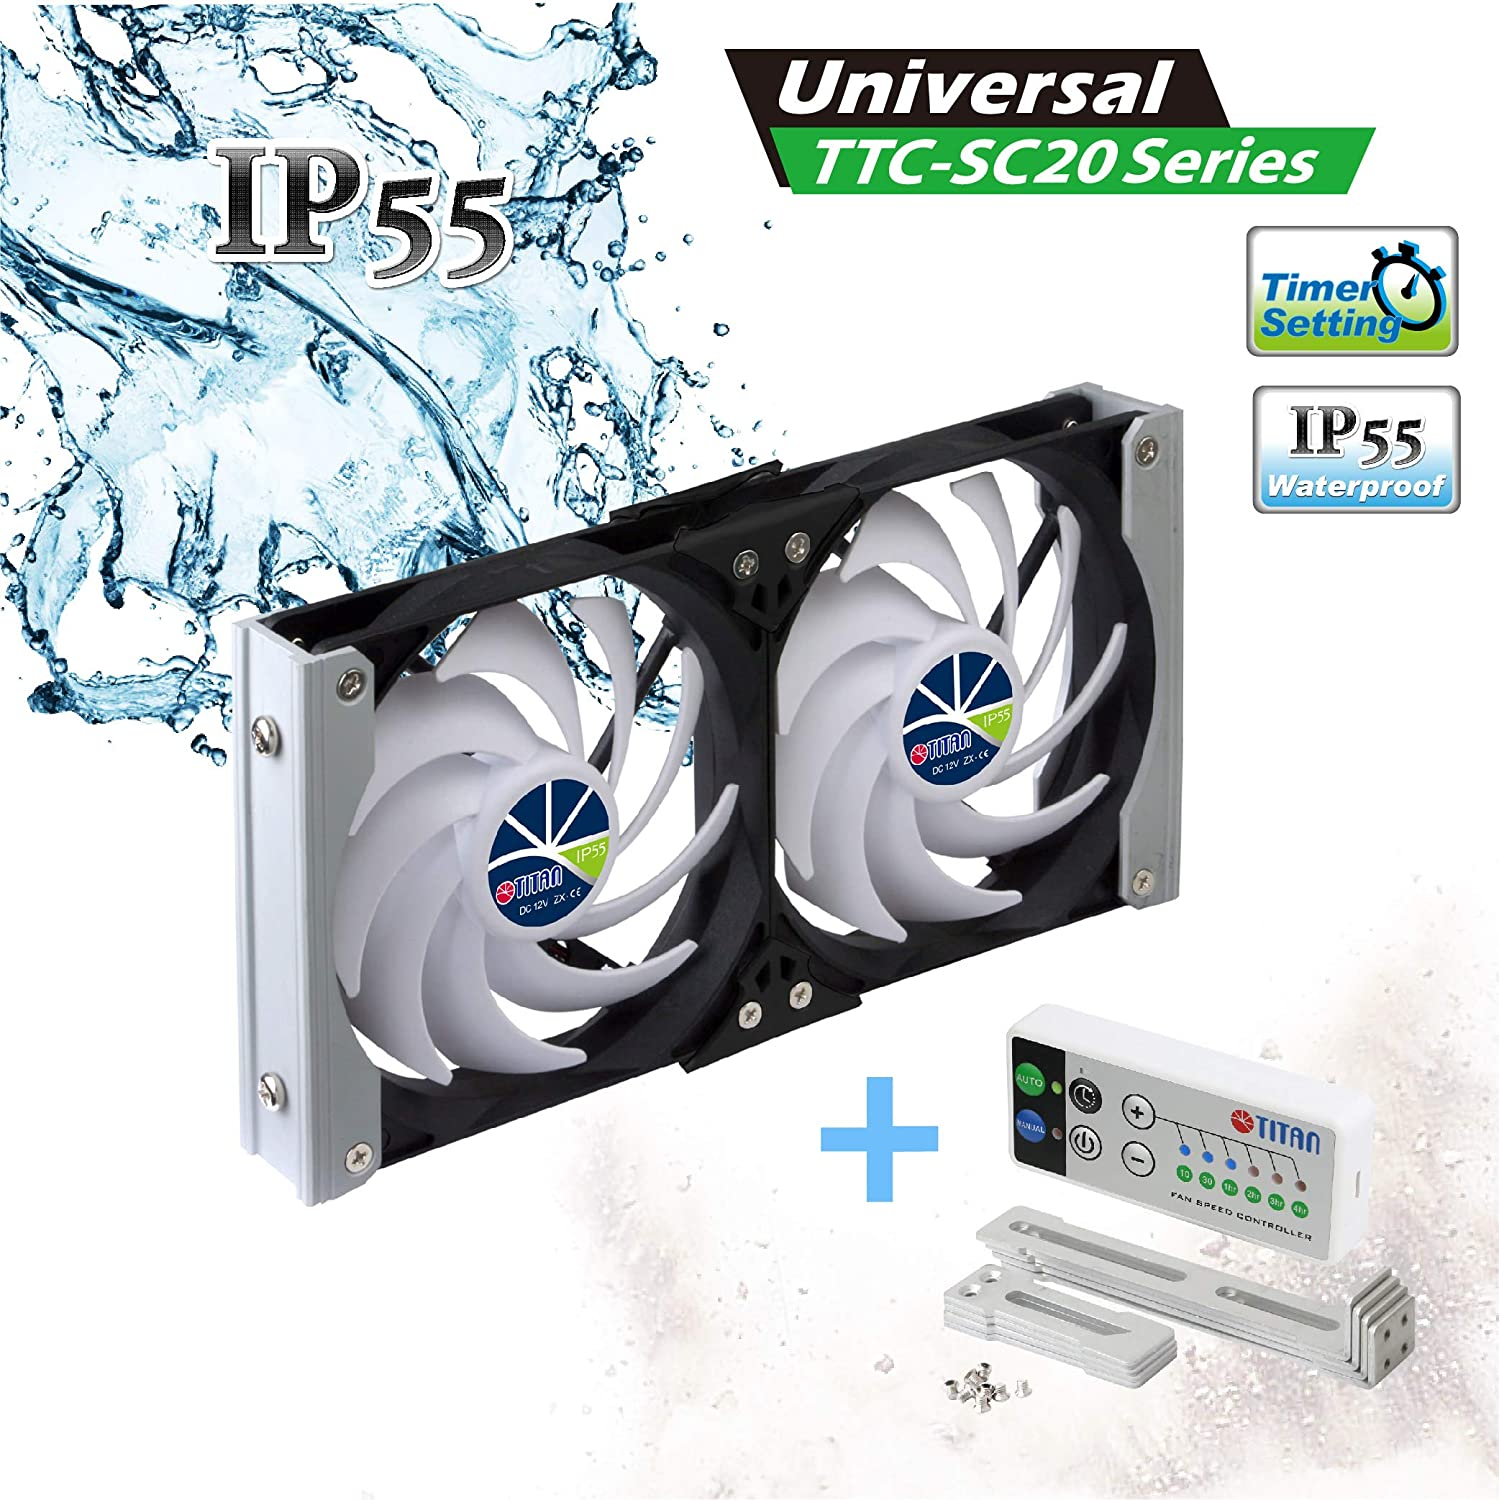 TITAN- 12V DC IP55 Waterproof Double Rack Mount Ventilation Cooling Fan with Timer and Speed Controller- TTC-SC20 (90mm)